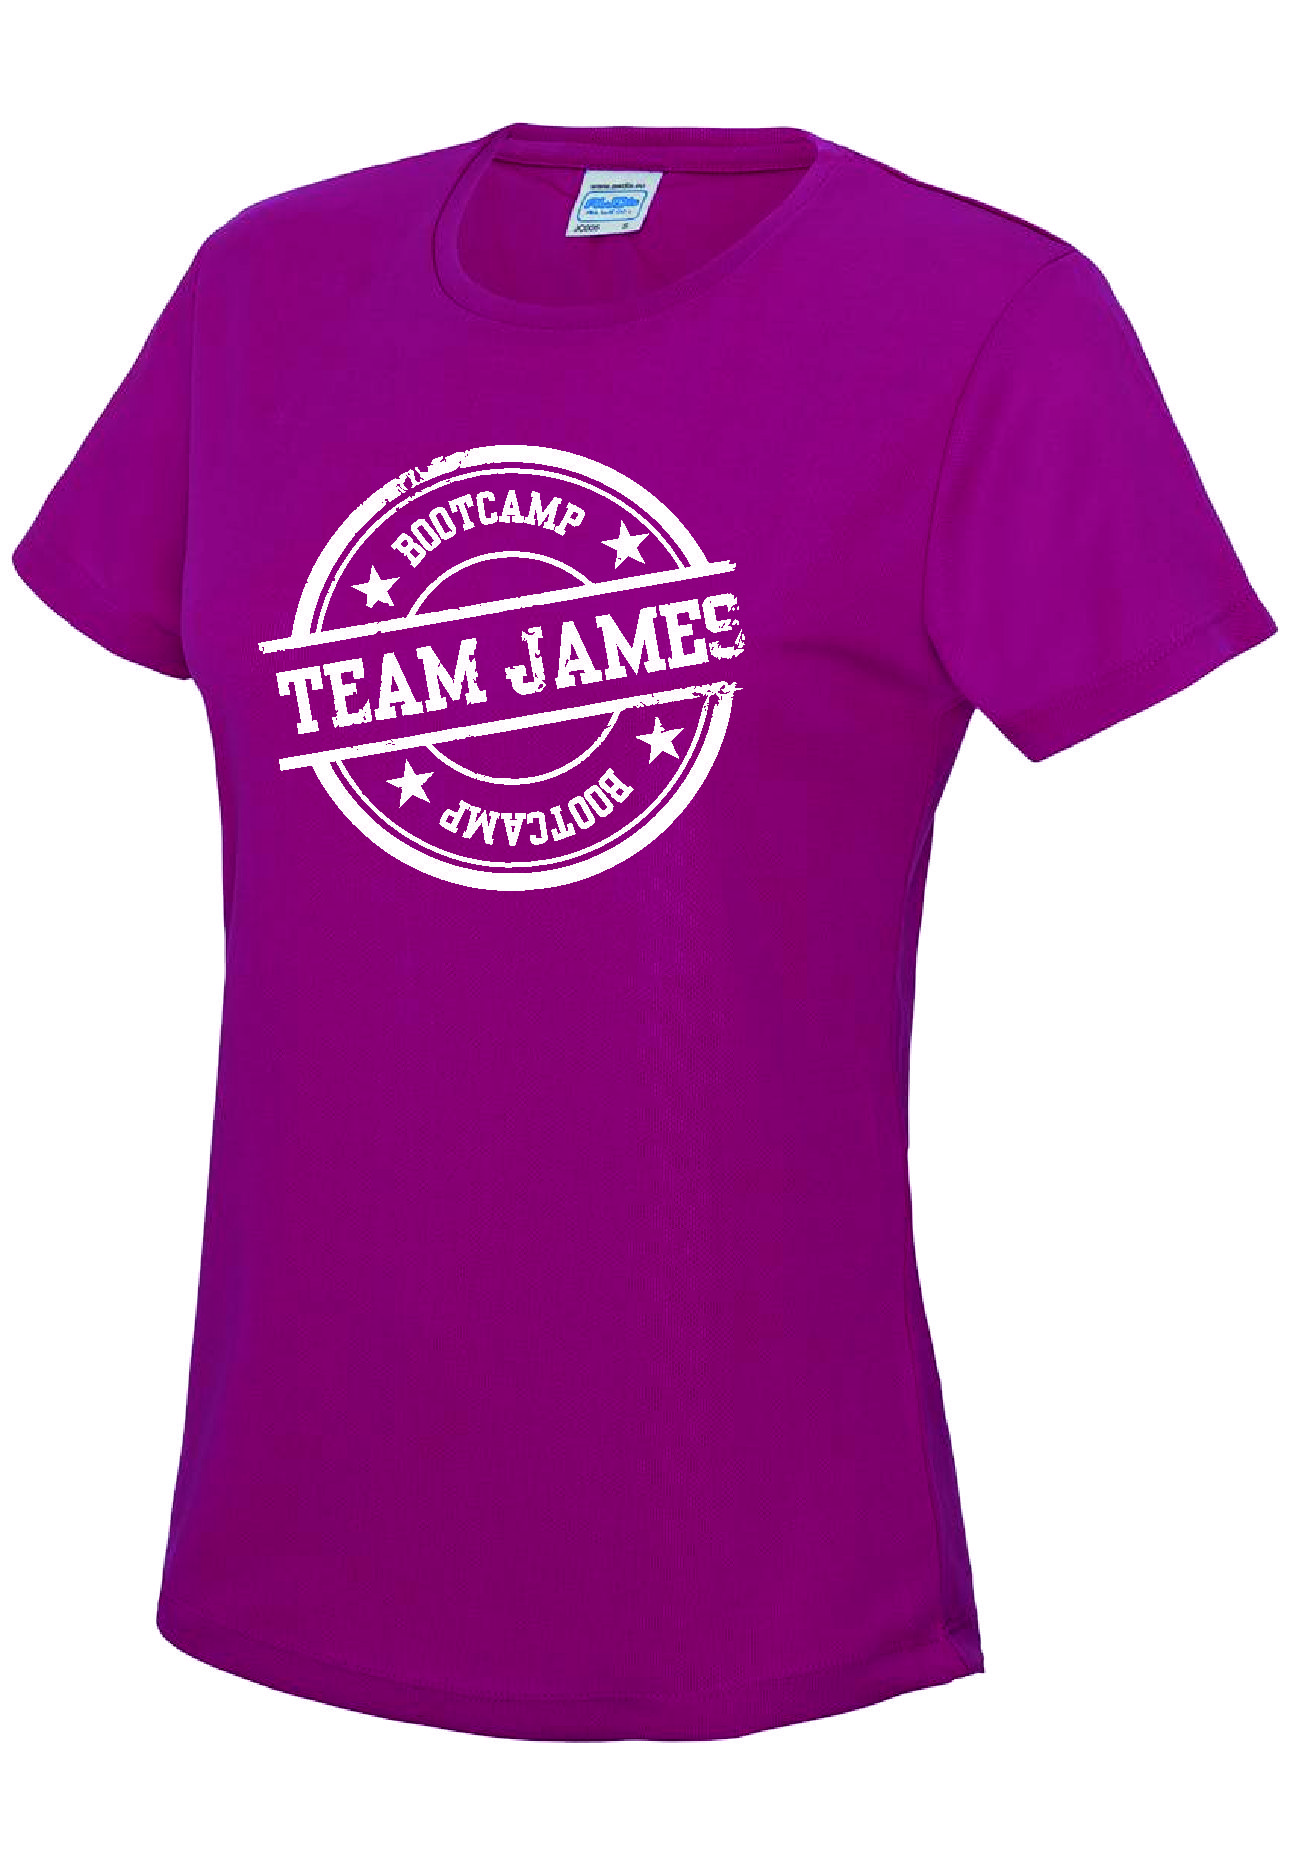 Team James - Performance Tee (Ladies)